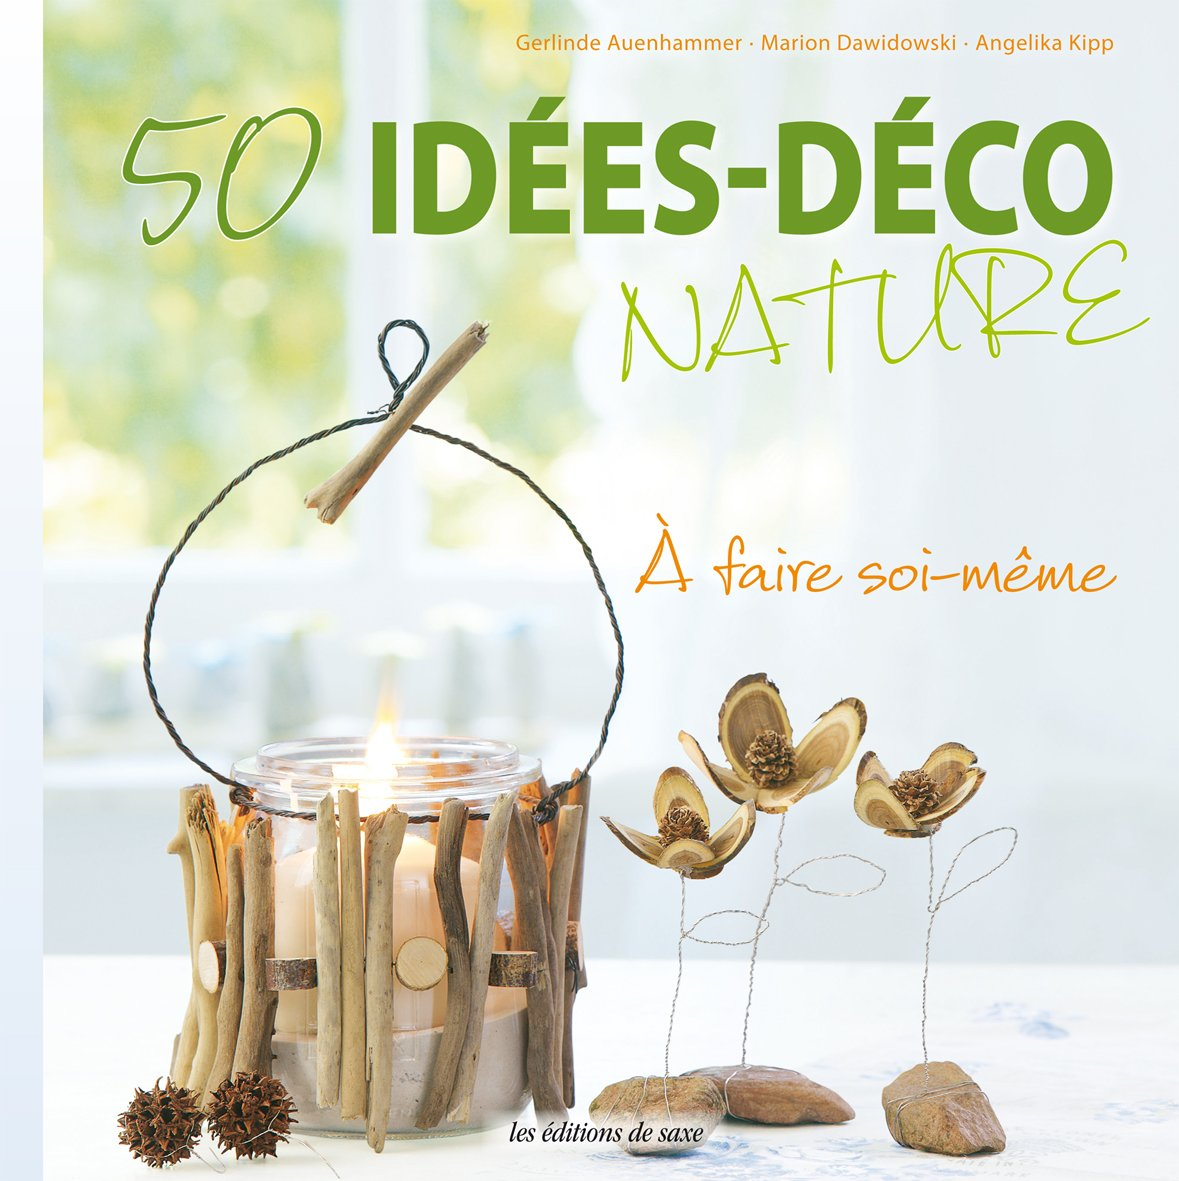 50 Idees Deco Nature A Faire Soi Meme (French) Paperback